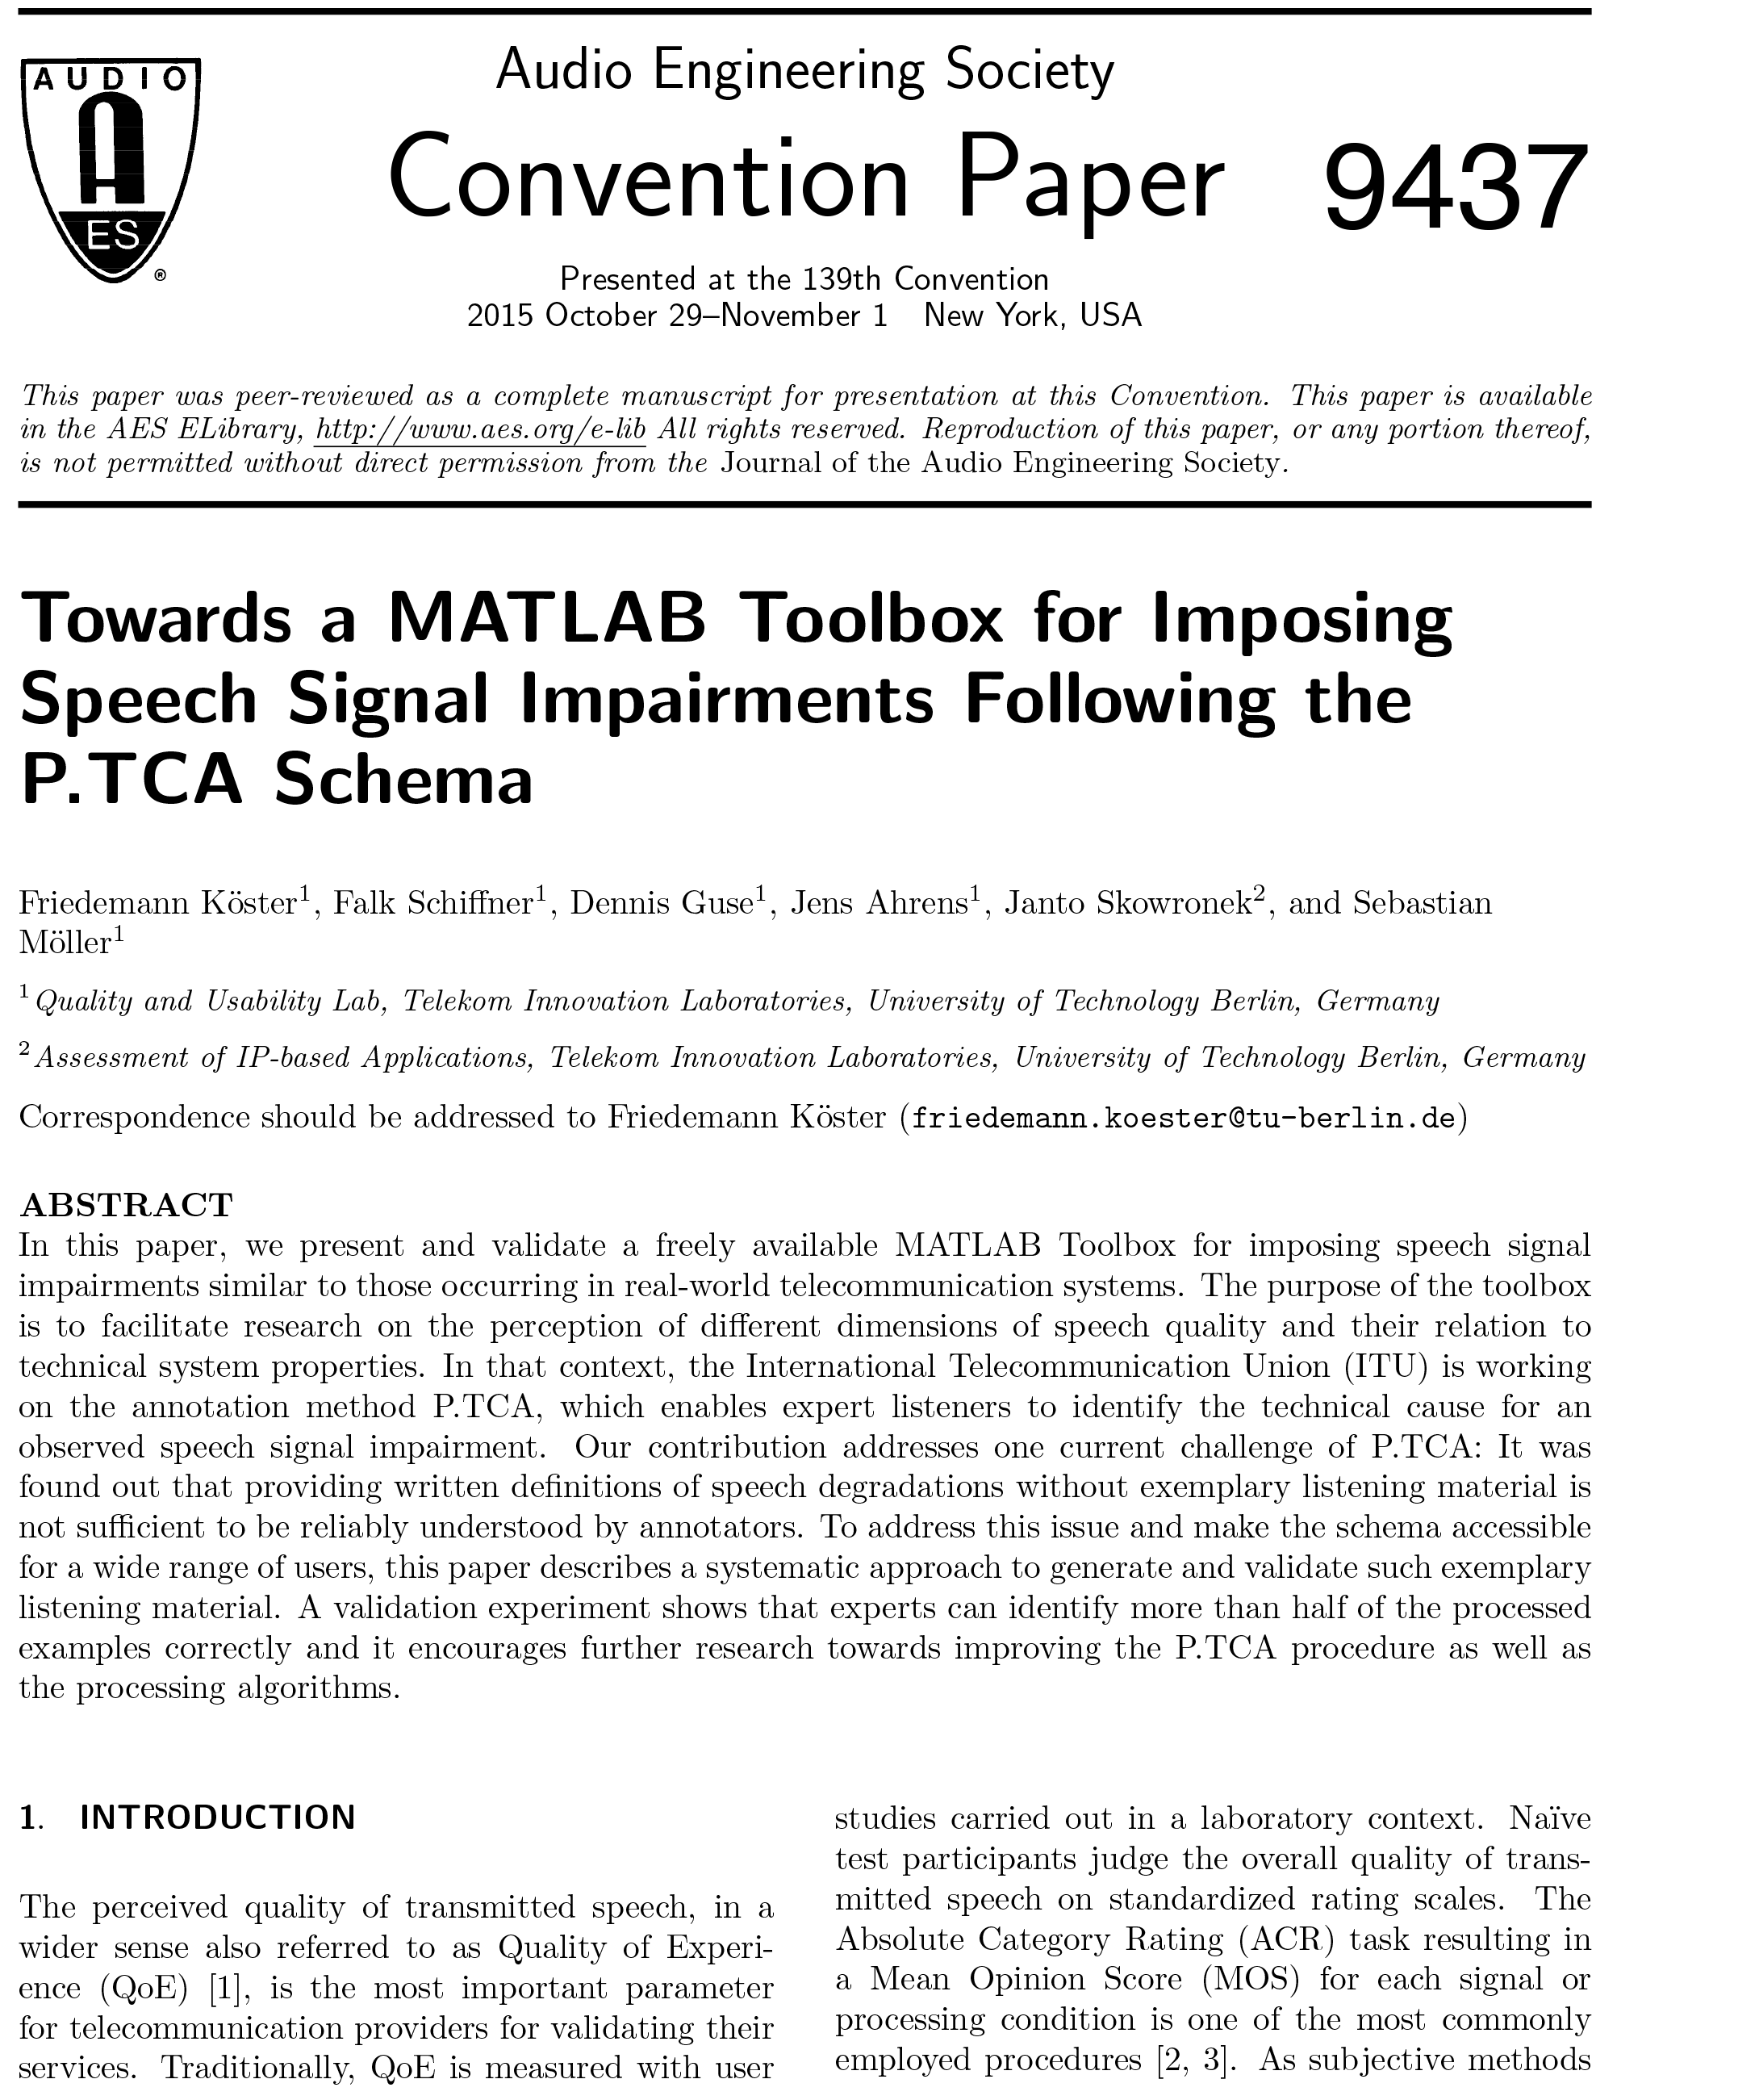 AES E-Library » Towards a MATLAB Toolbox for Imposing Speech